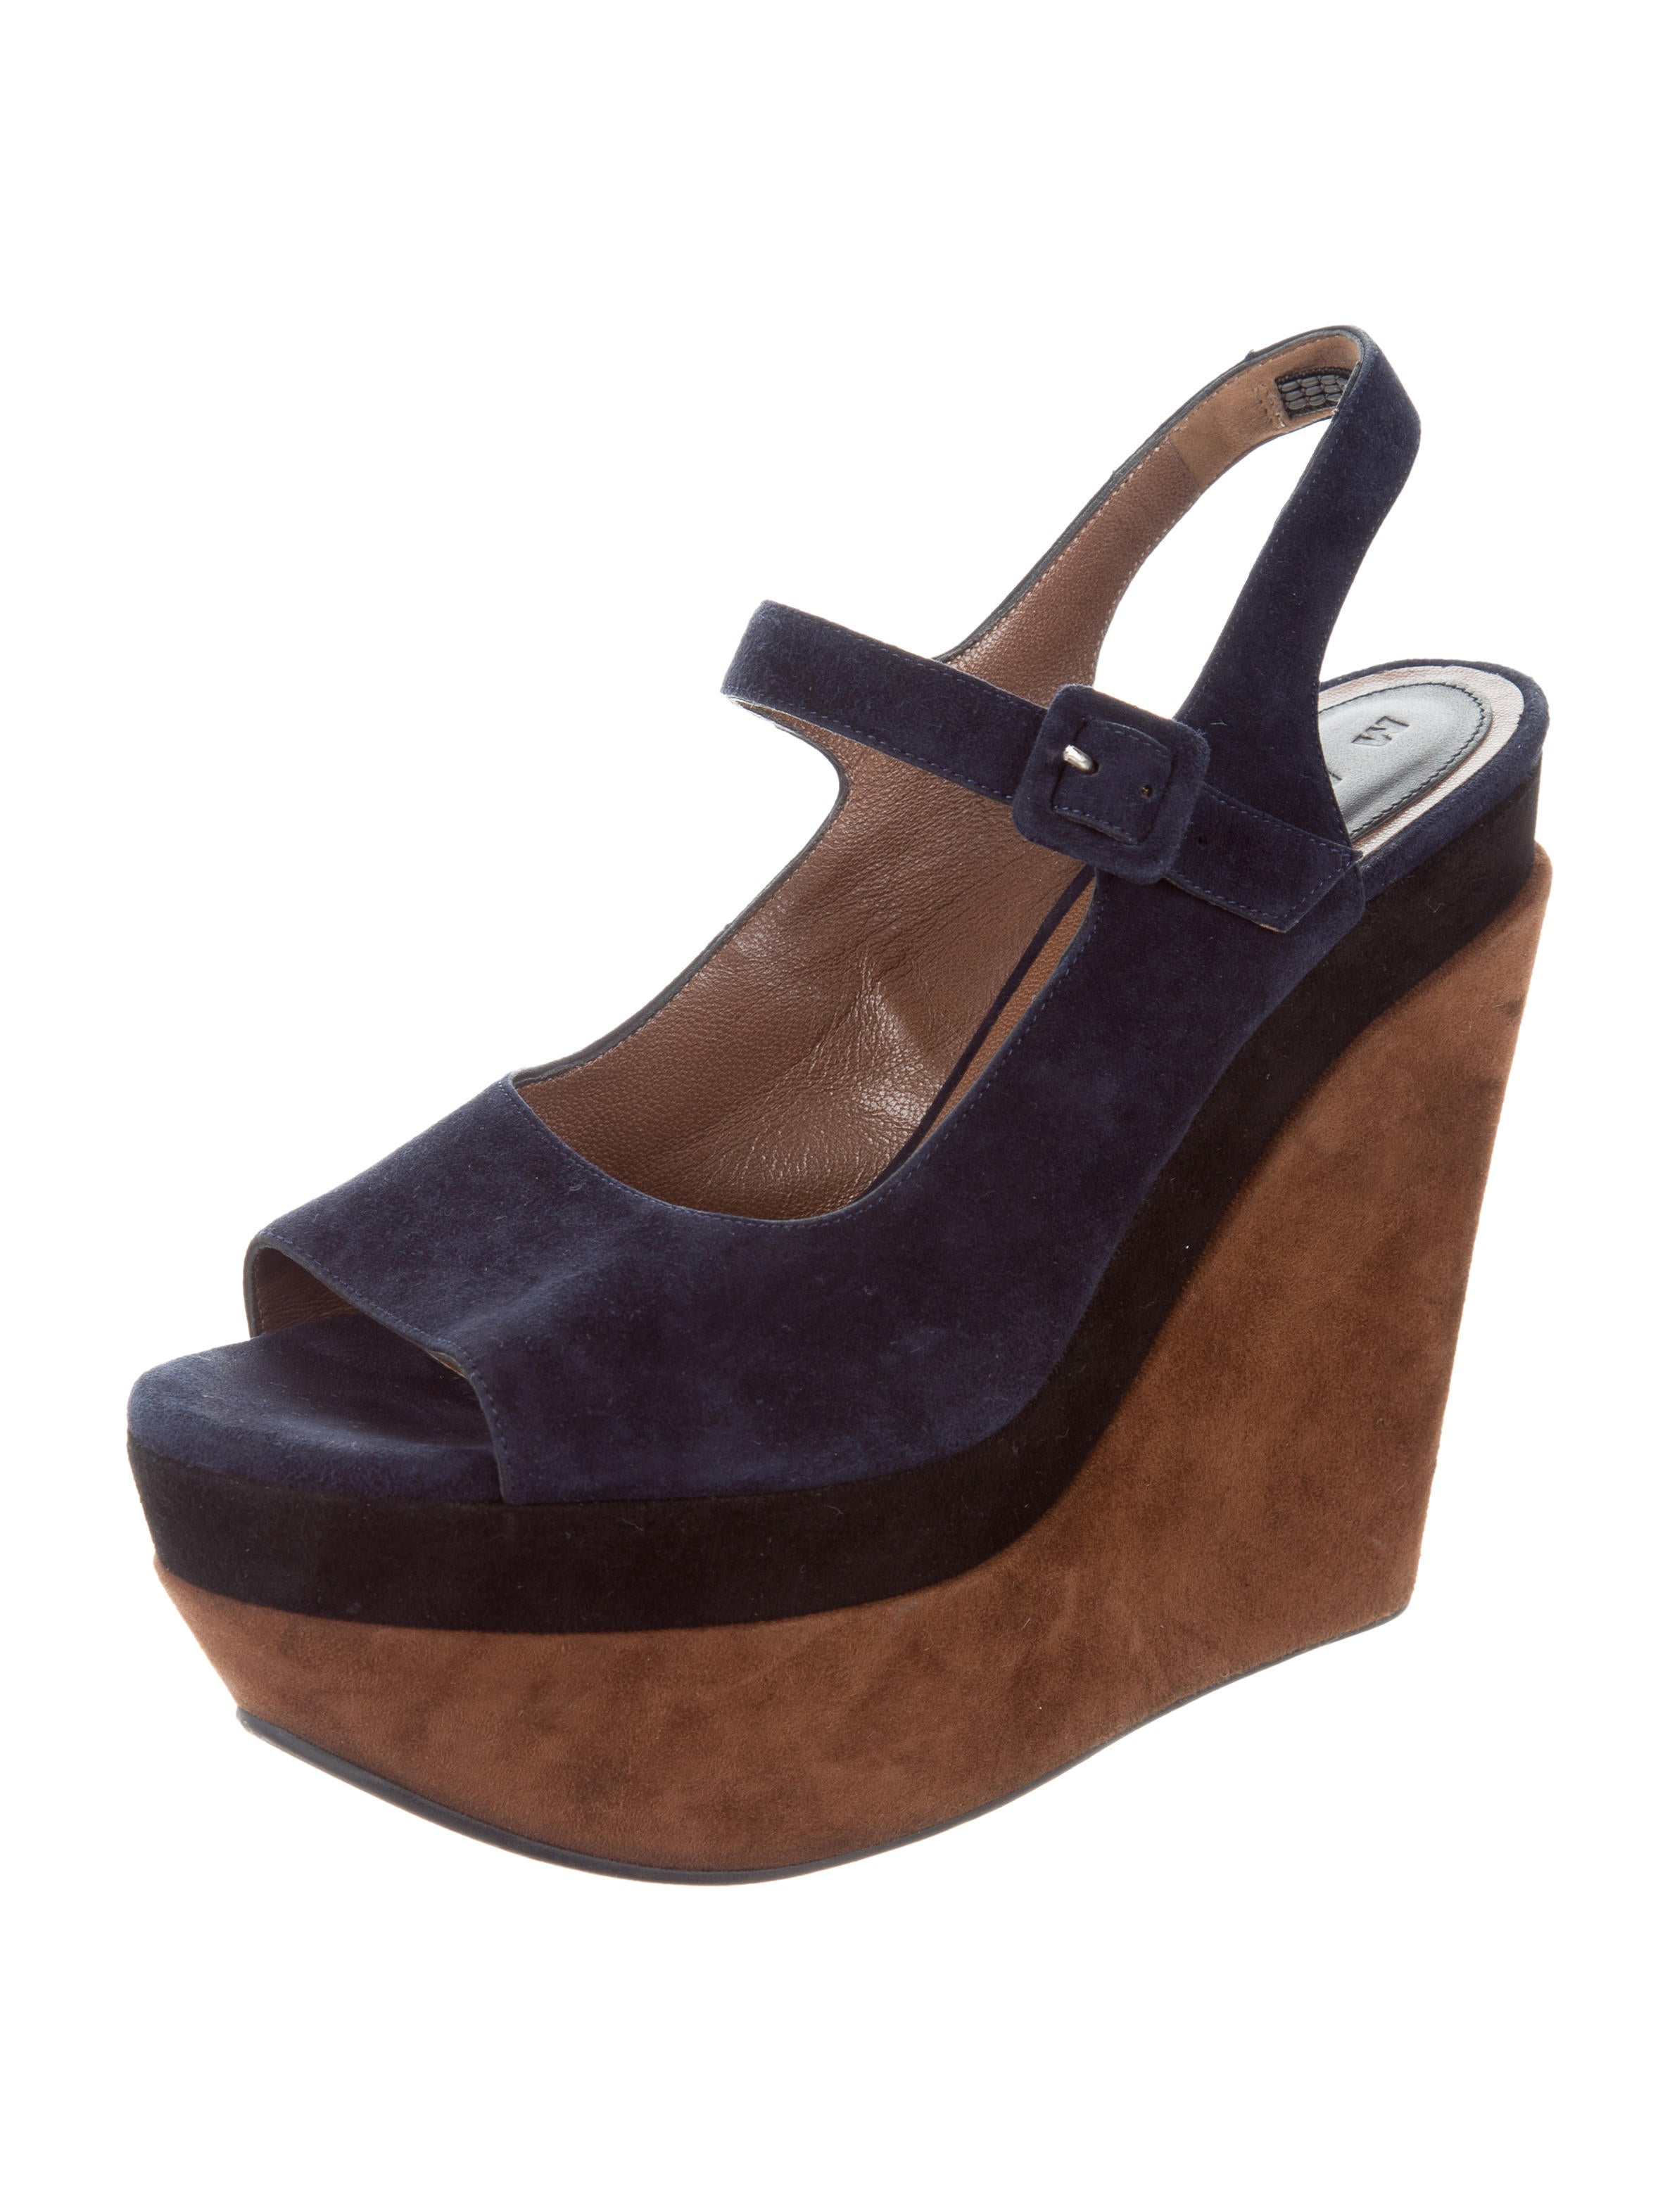 Marni Suede Wedge Pumps extremely for sale 0URzUN3